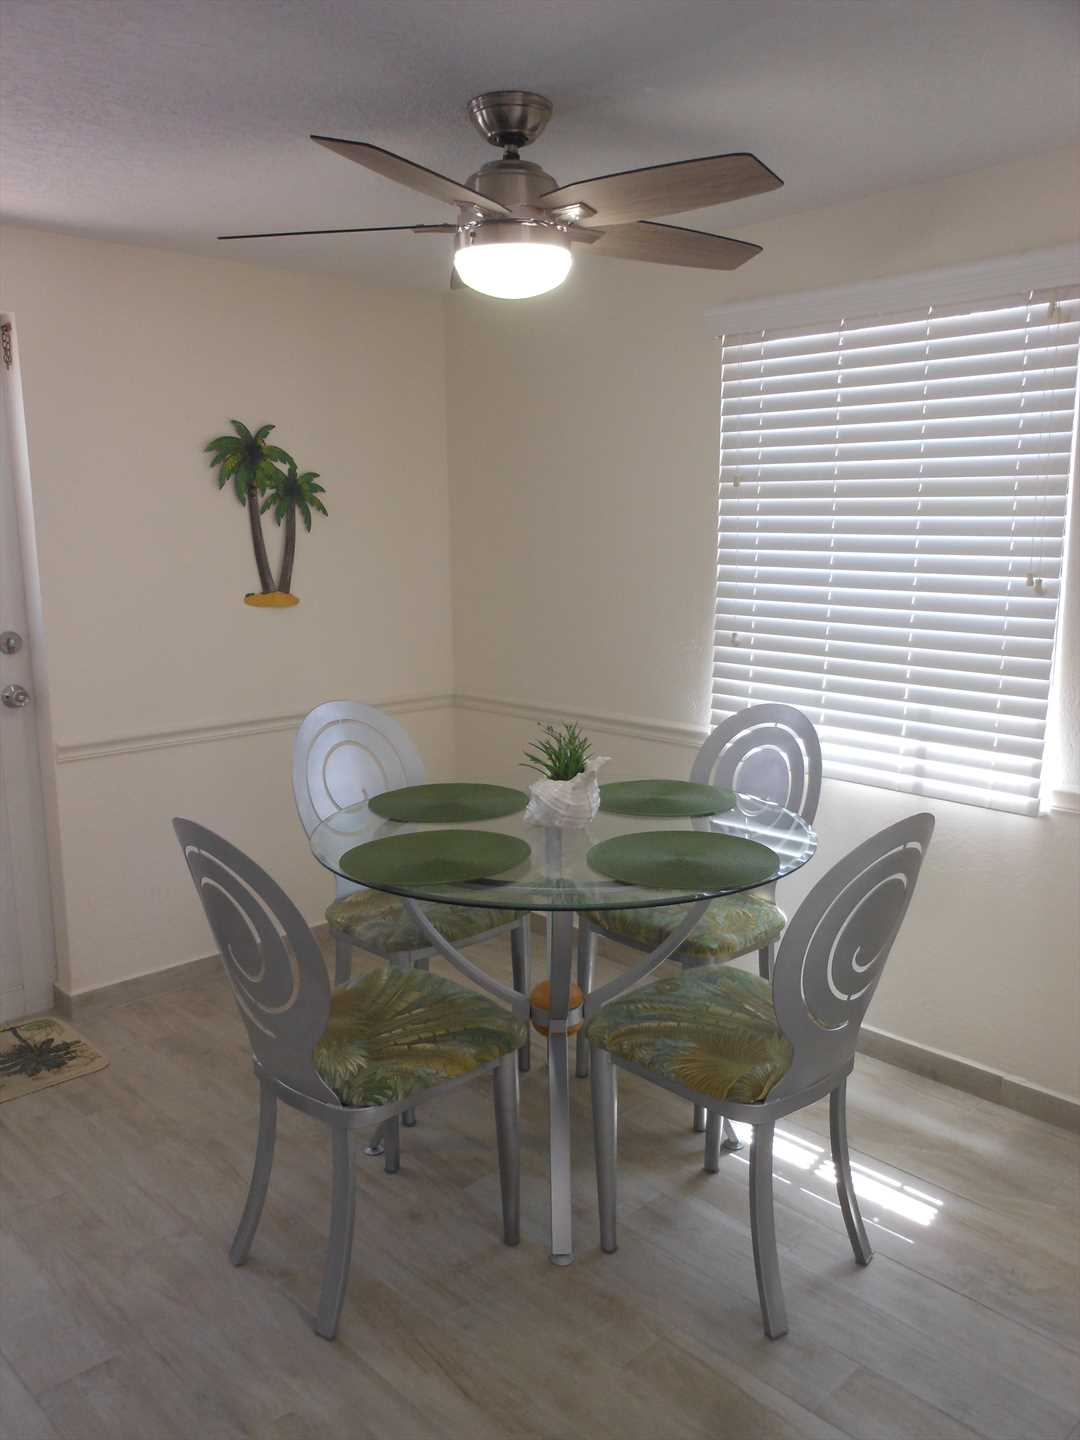 Dining Area with New Ceiling Fan